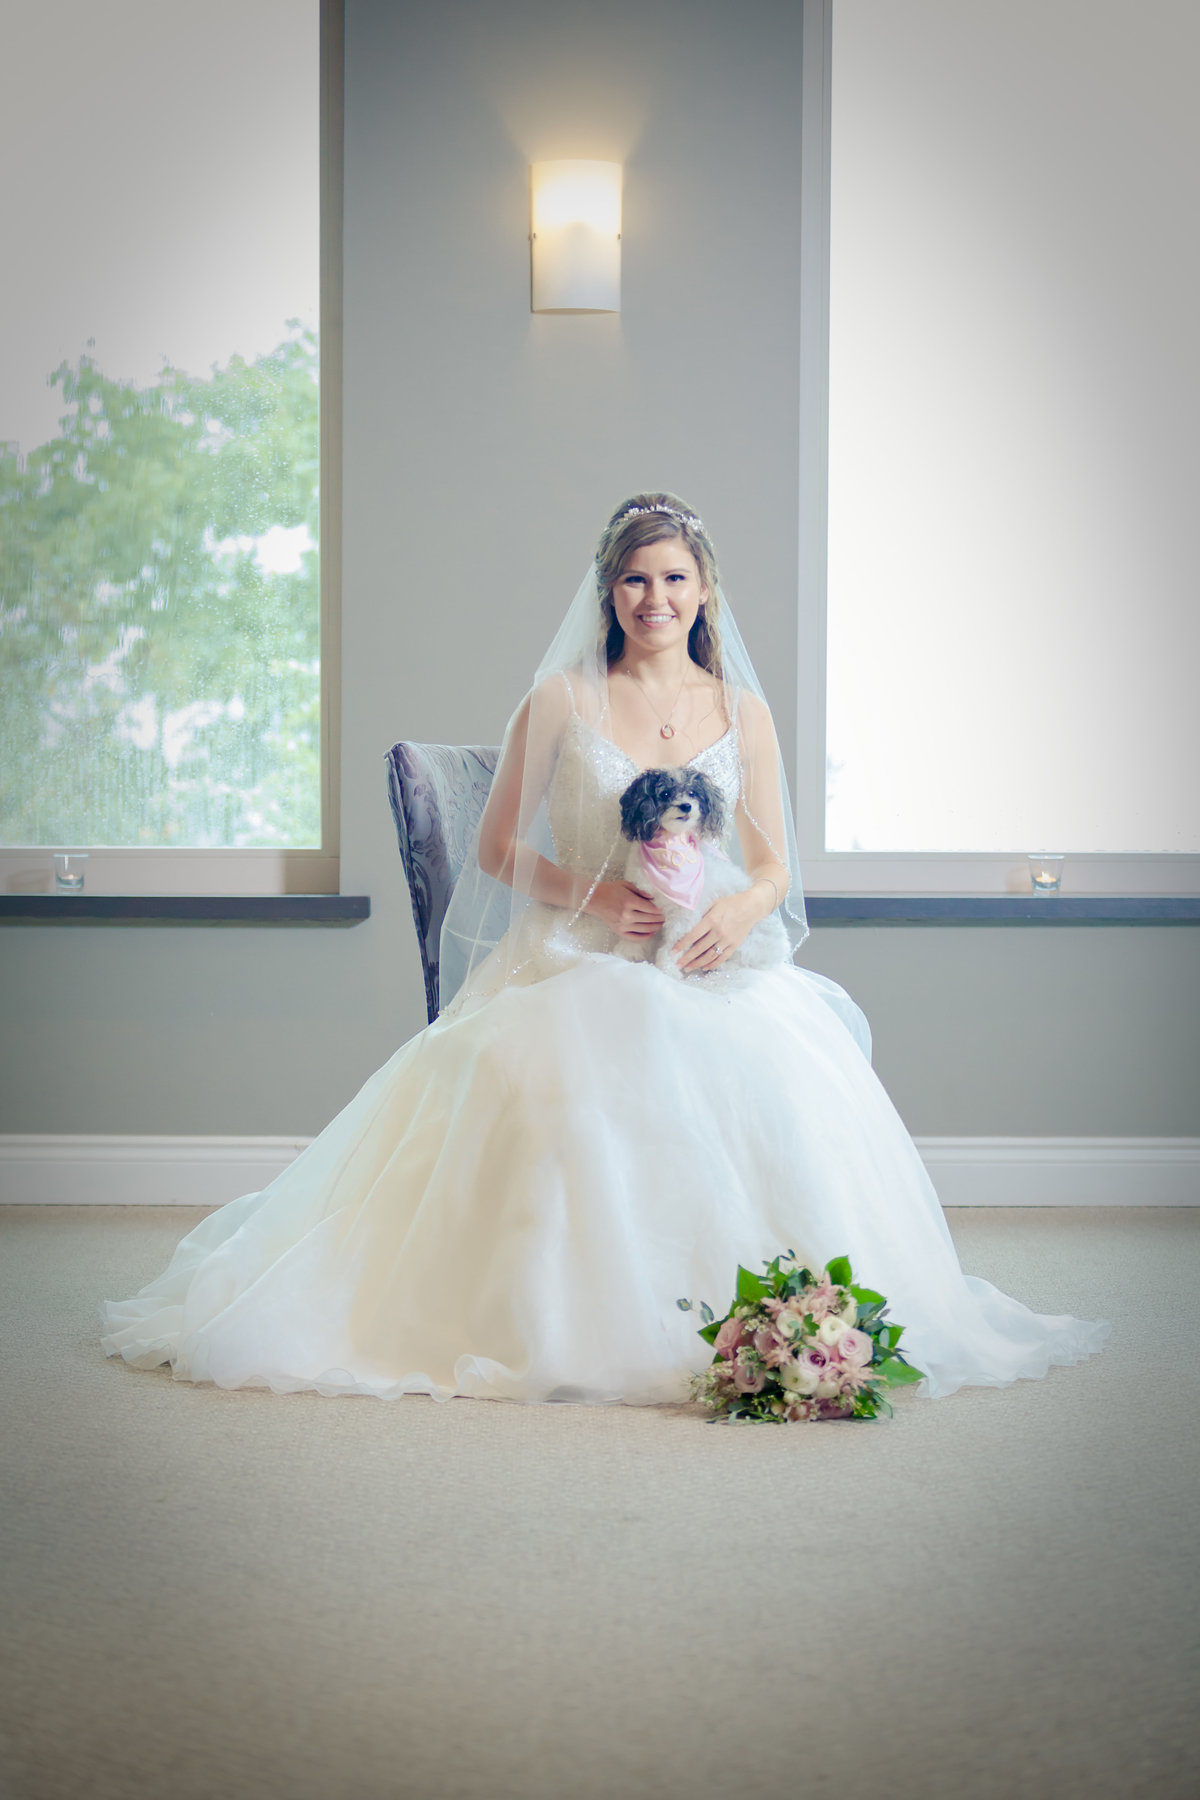 Bride with Dog Photo